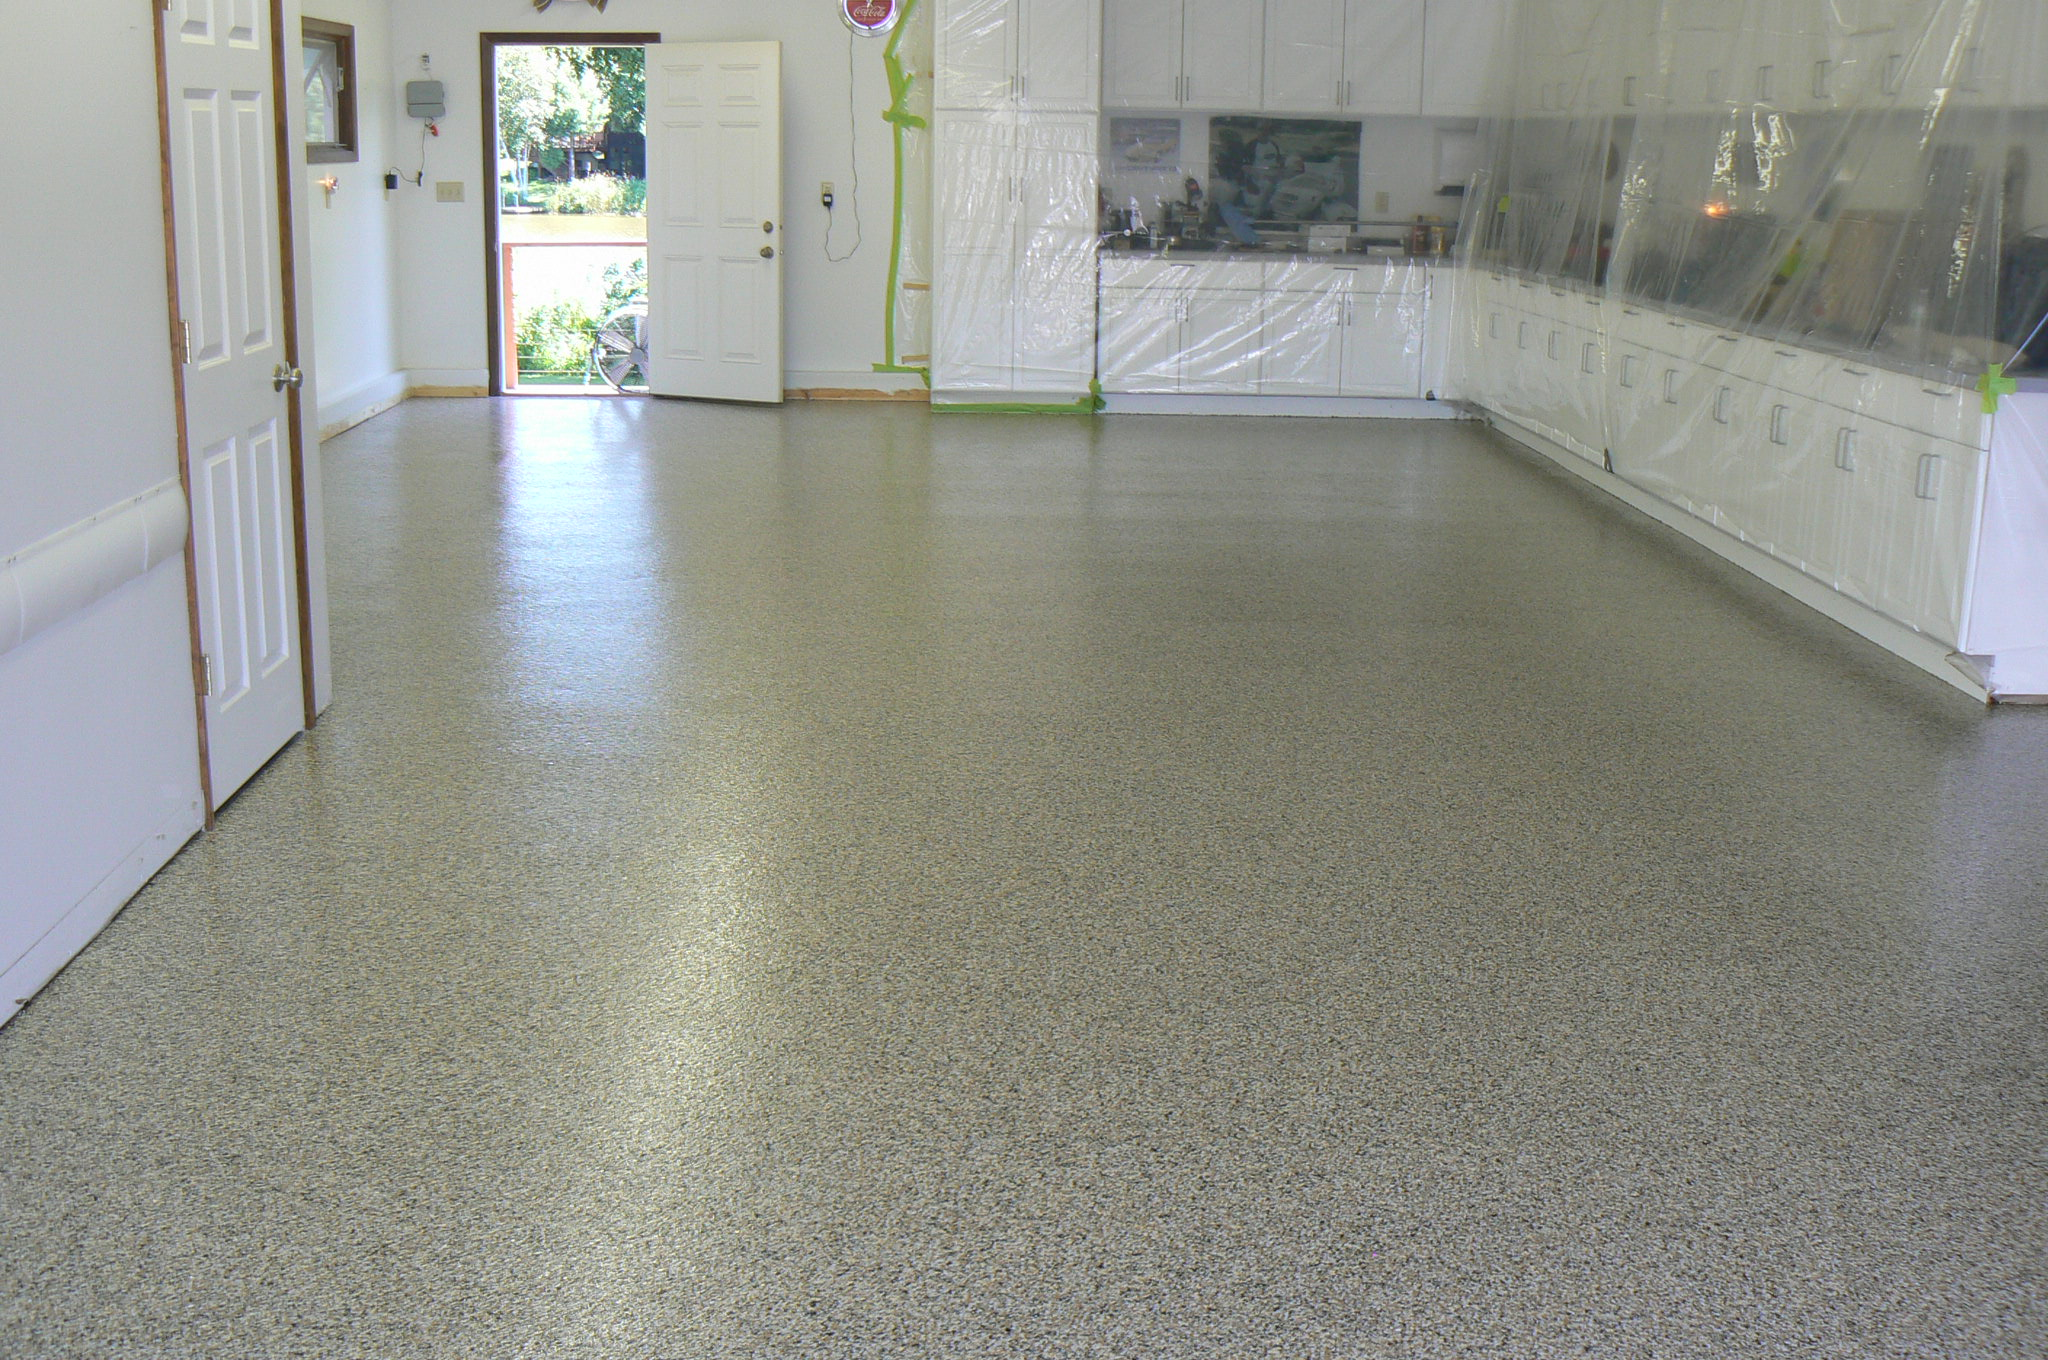 to colors garage designs cleaning for com suitable option paint epoxy gnomefrenzy cream your cost floors floor add coating